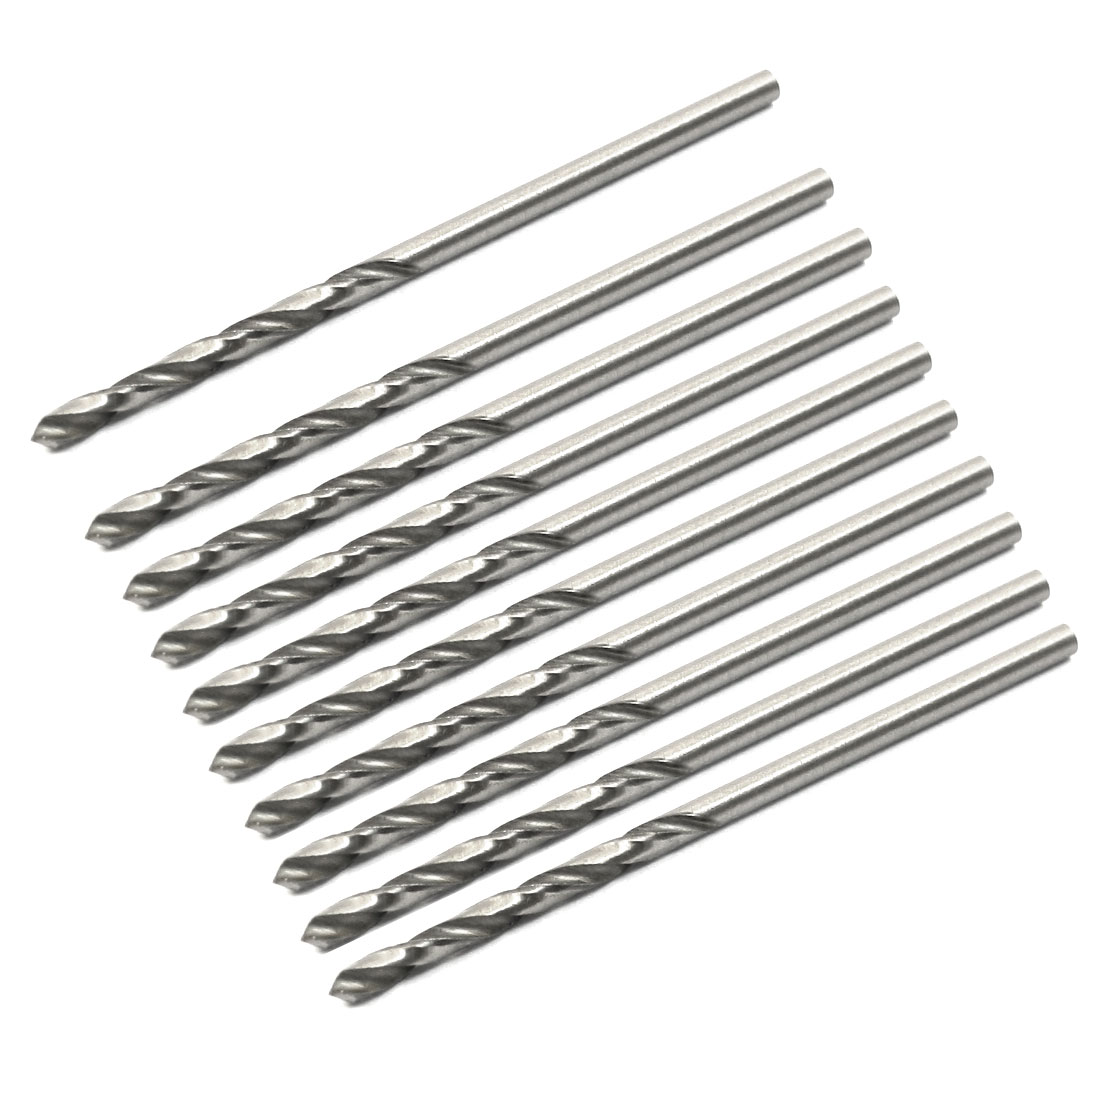 High Speed Steel 1.8mm Dia Split Point 46mm Long Twist Drill Bits 10 Pcs